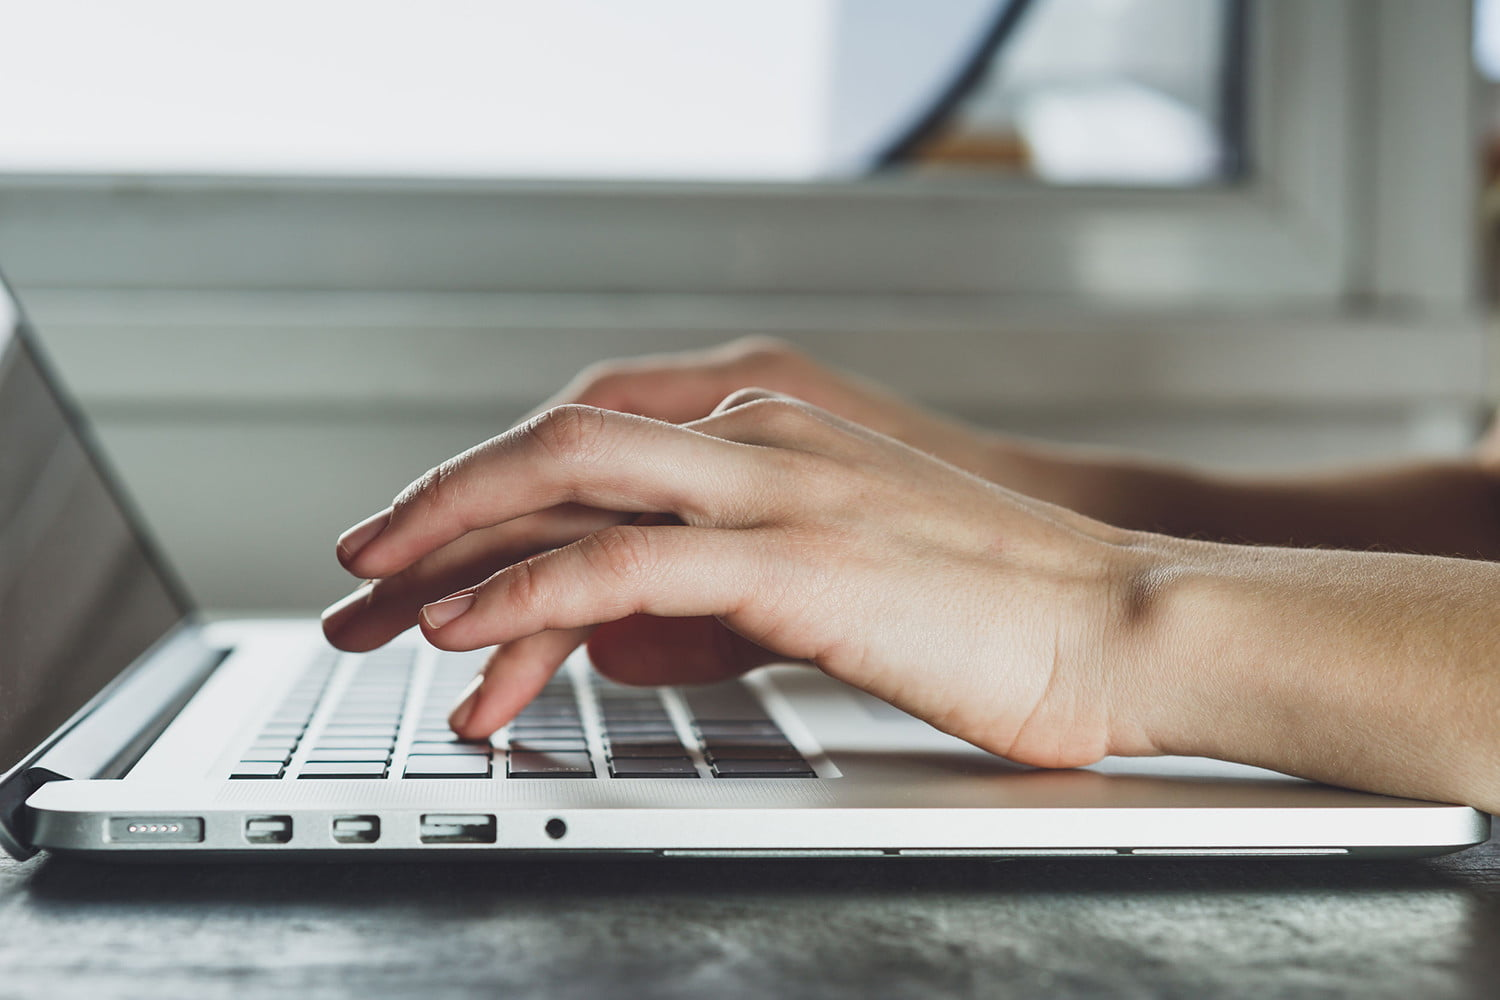 How To Run A Free Background Check Online Digital Trends